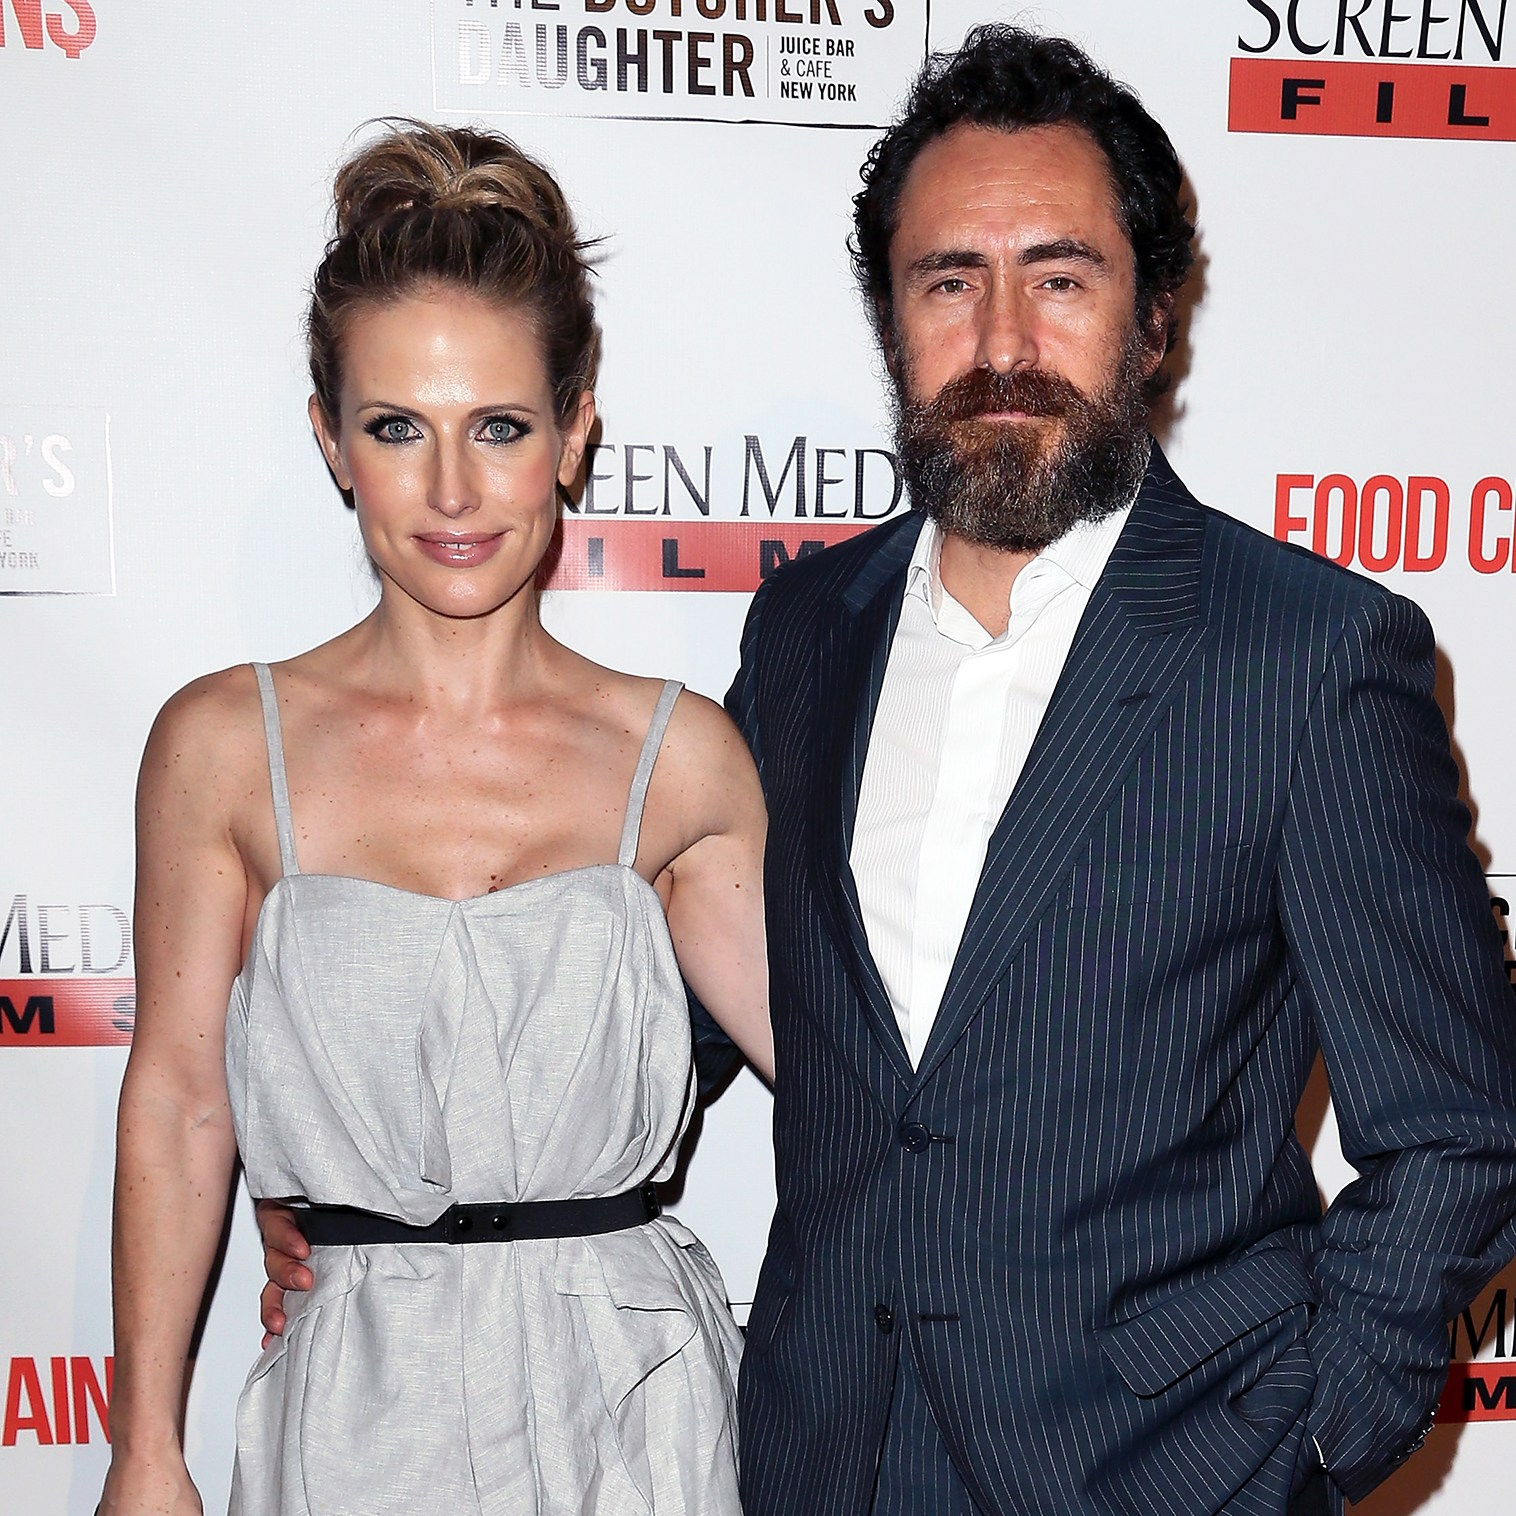 Demian Bichir Stefanie Sherk Cause of Death